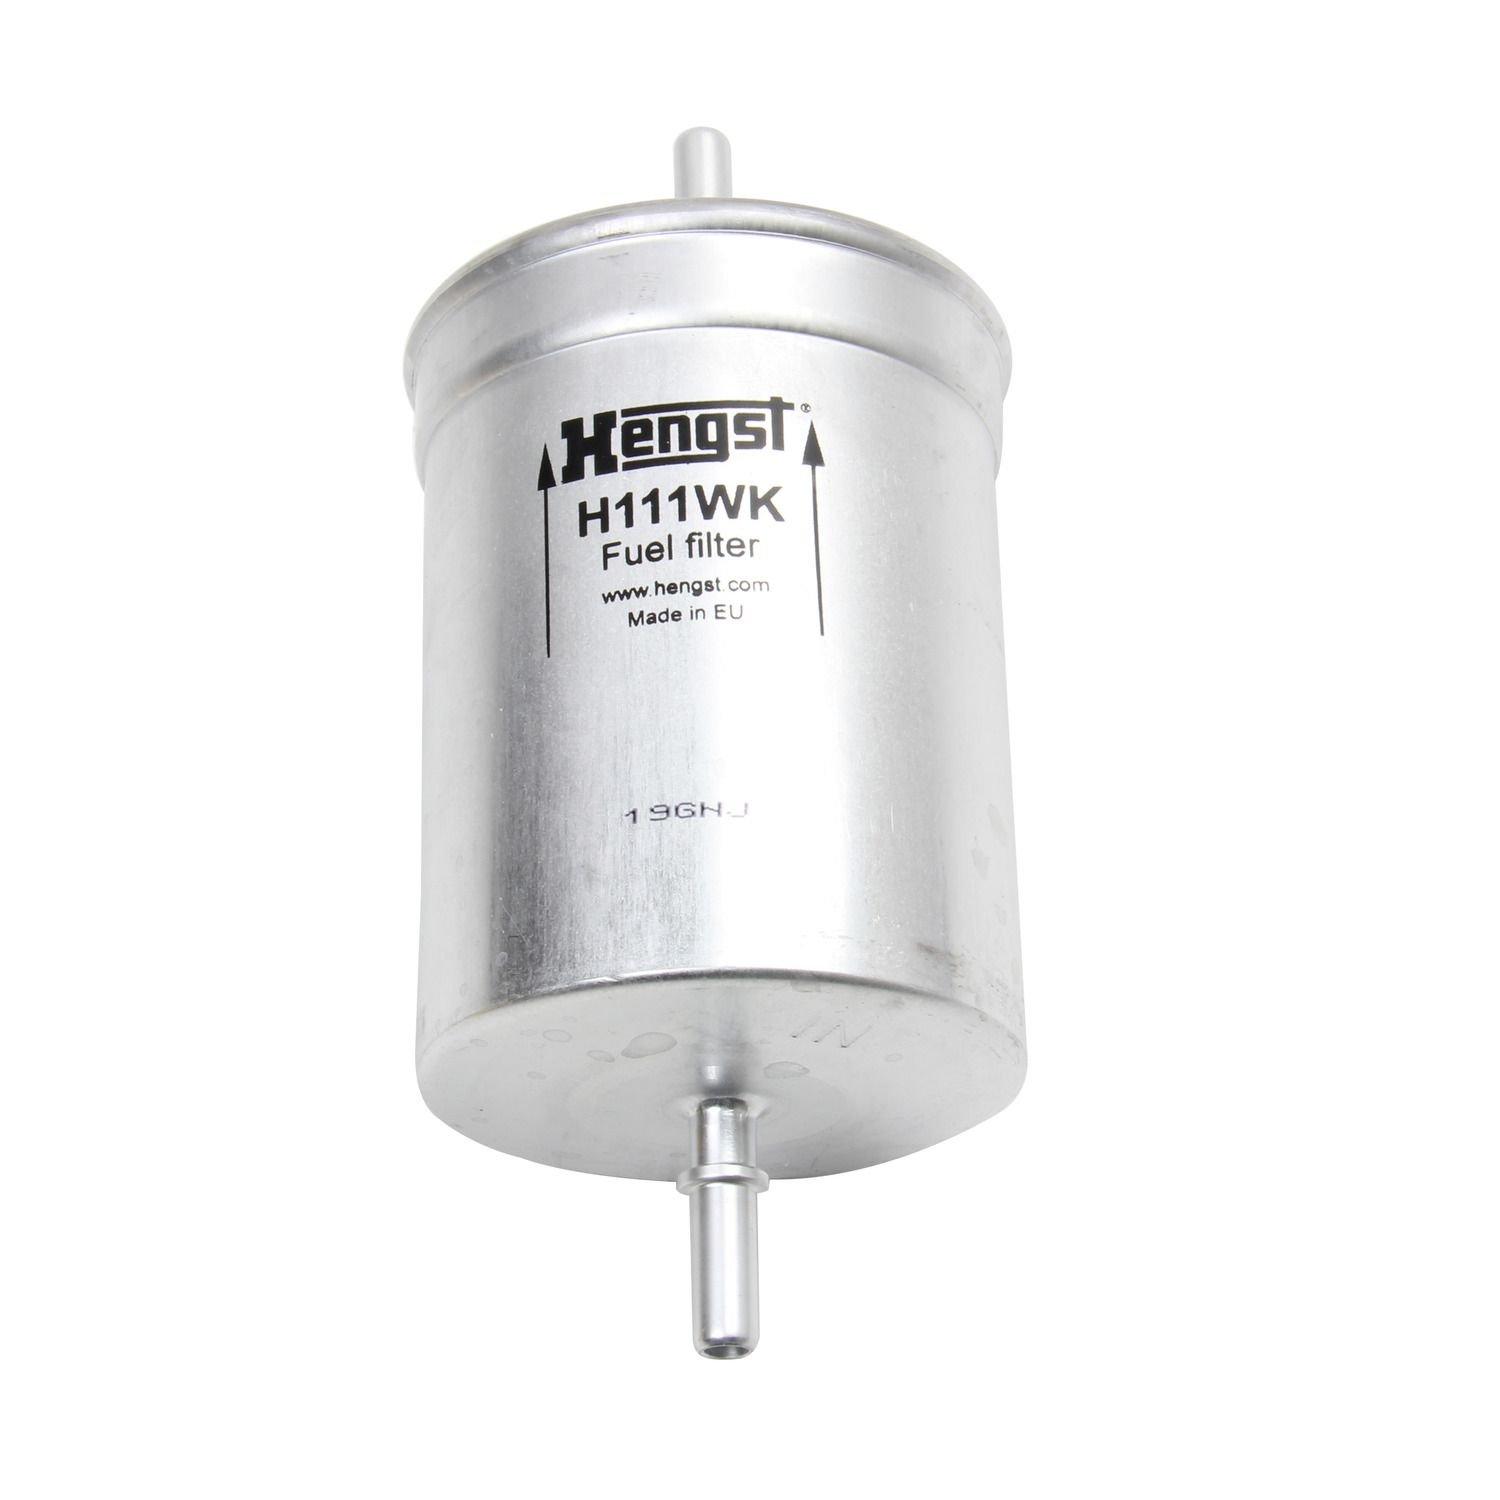 WIX 33274 Complete In-Line Fuel Filter Pack of 1